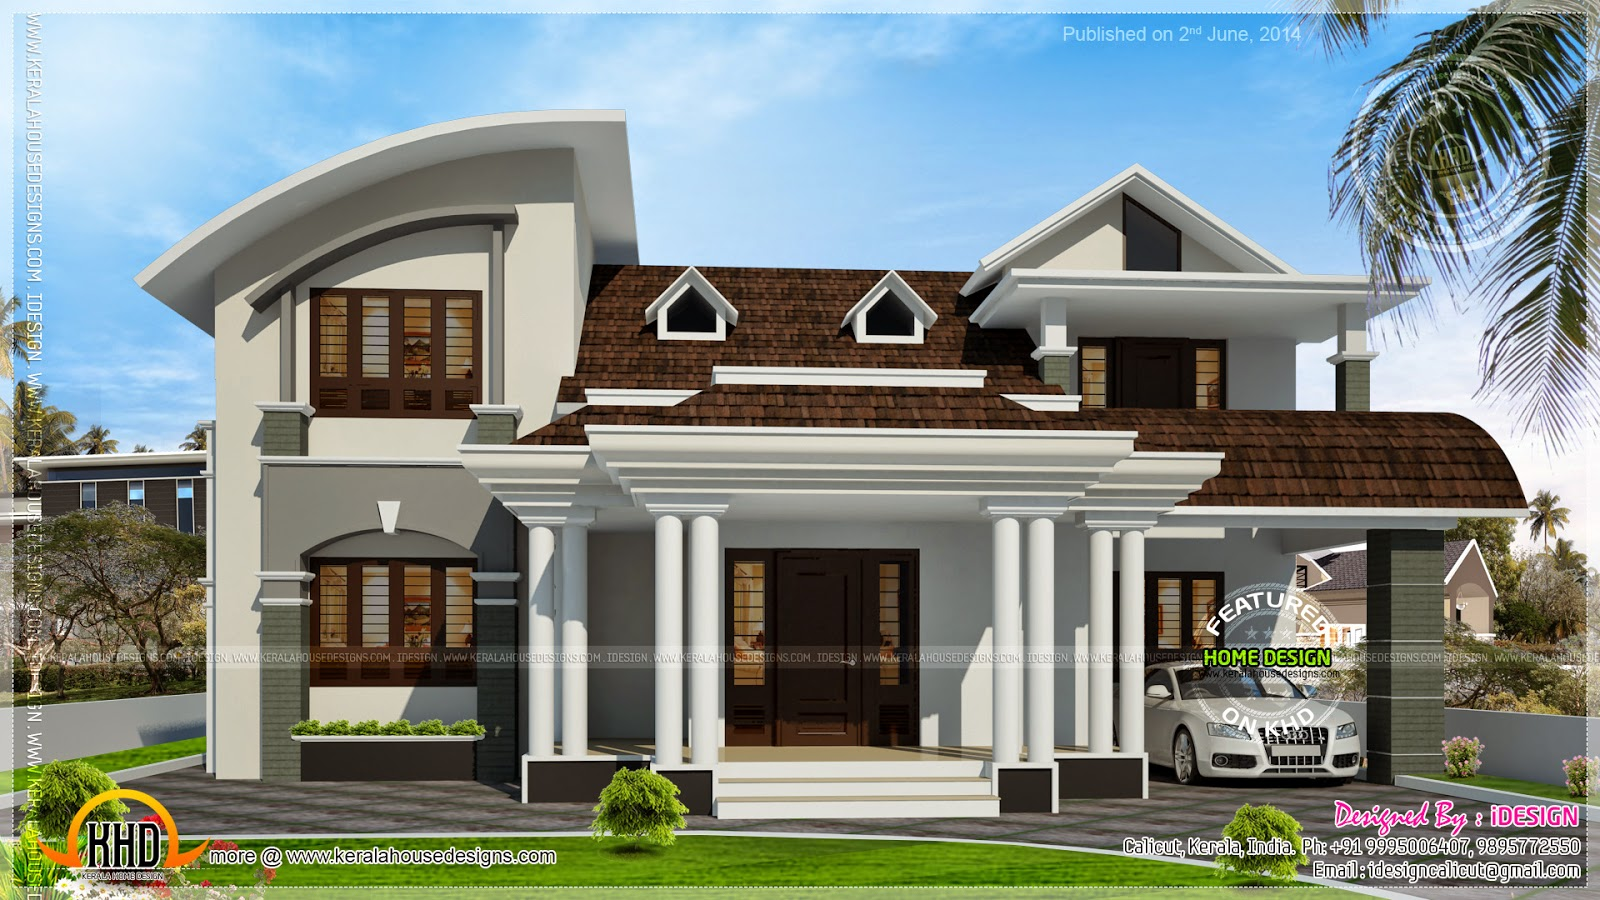 Siddu buzz online kerala home design for Best windows for new house